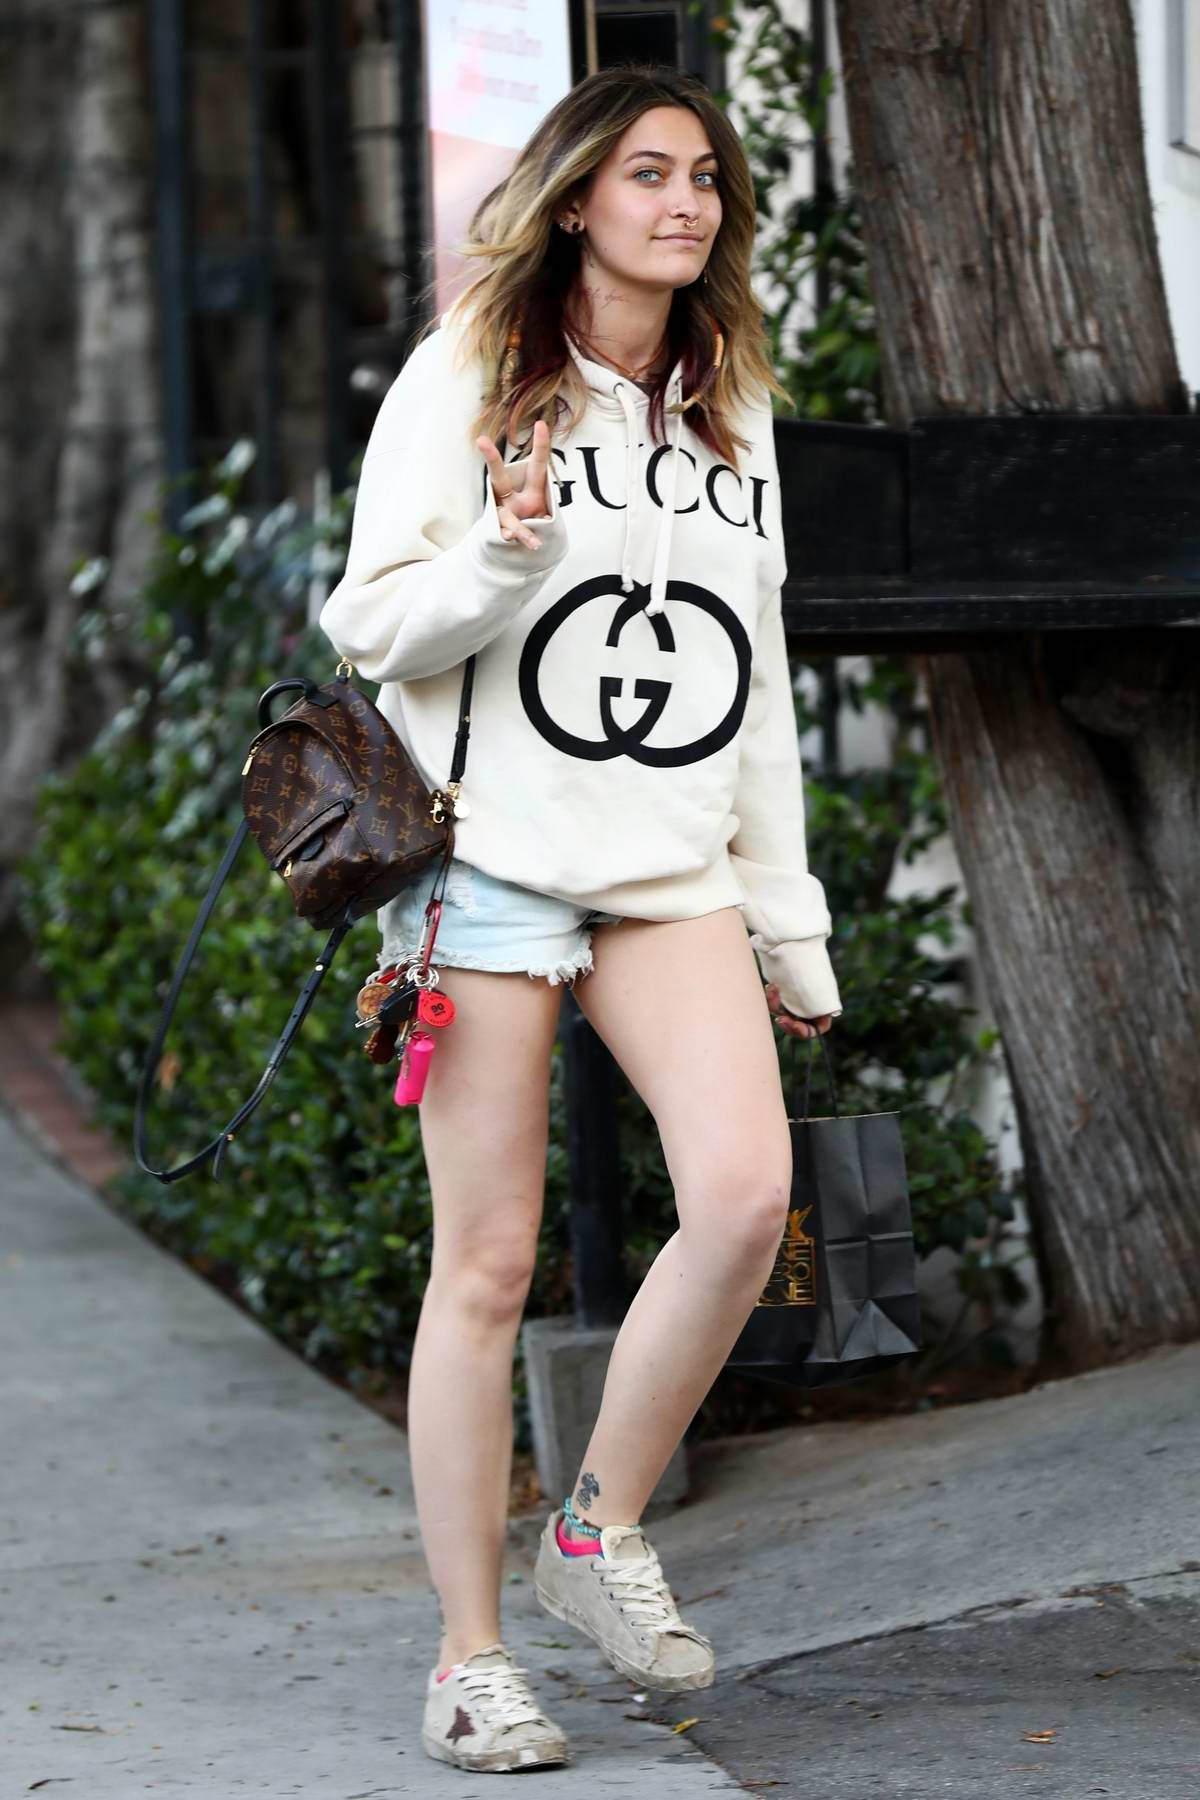 Paris Jackson puts on a leggy display in denim shorts paired with a Gucci hoodie as she steps out in Los Angeles